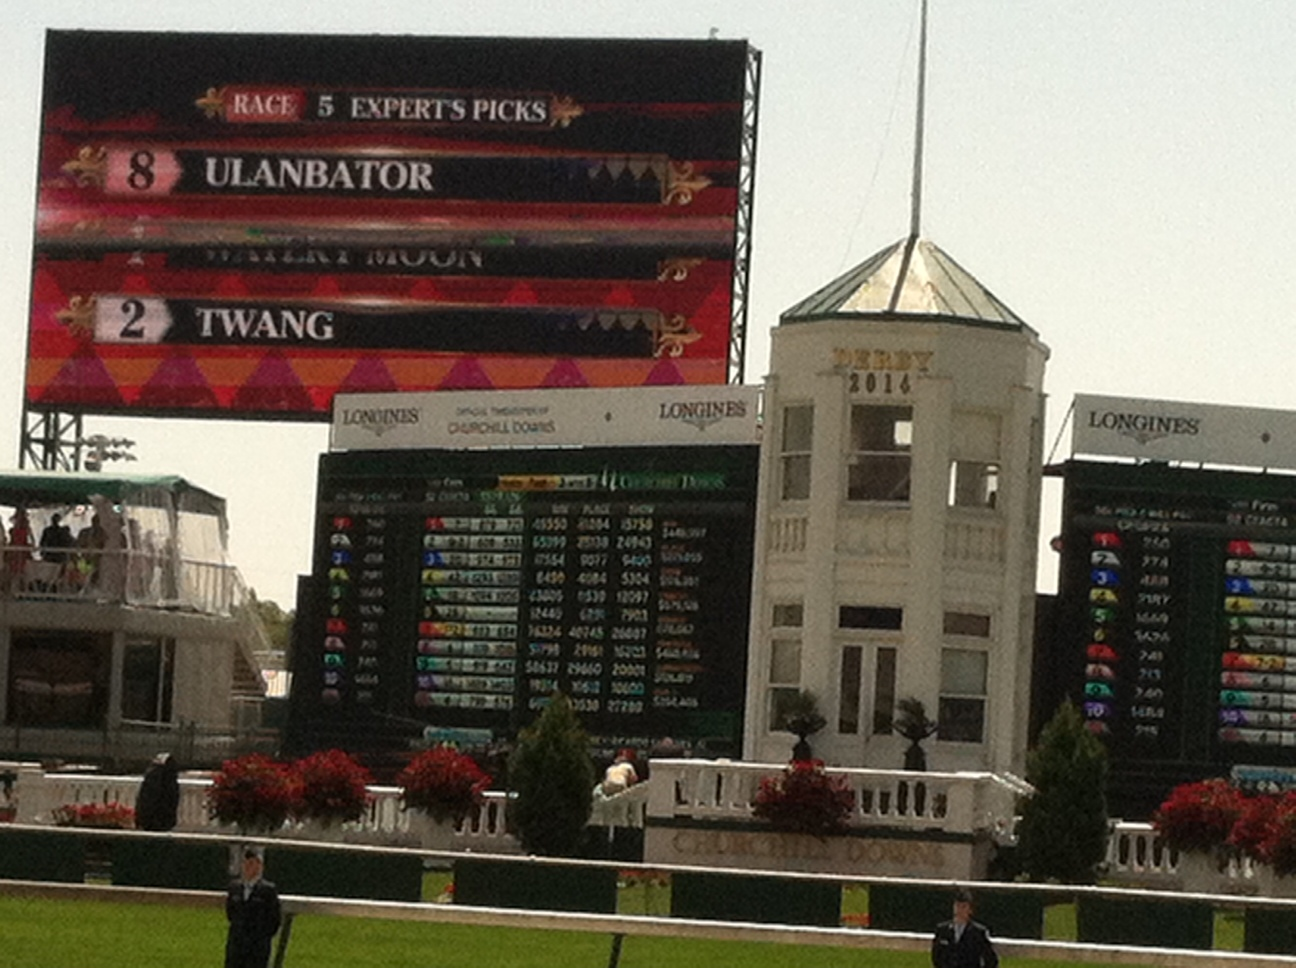 Our  box for Derby Day was right at the finish line.